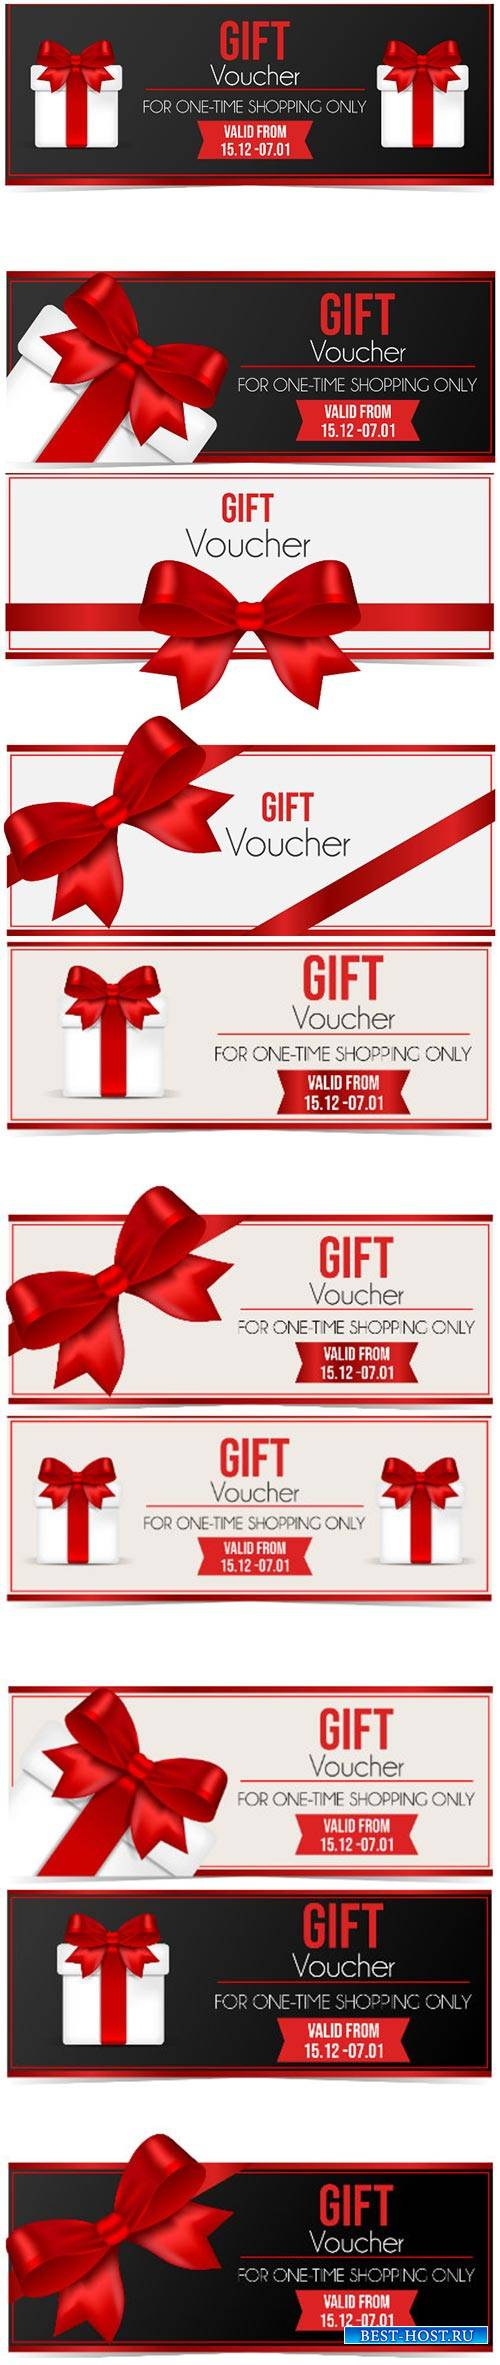 Gift voucher vector design template